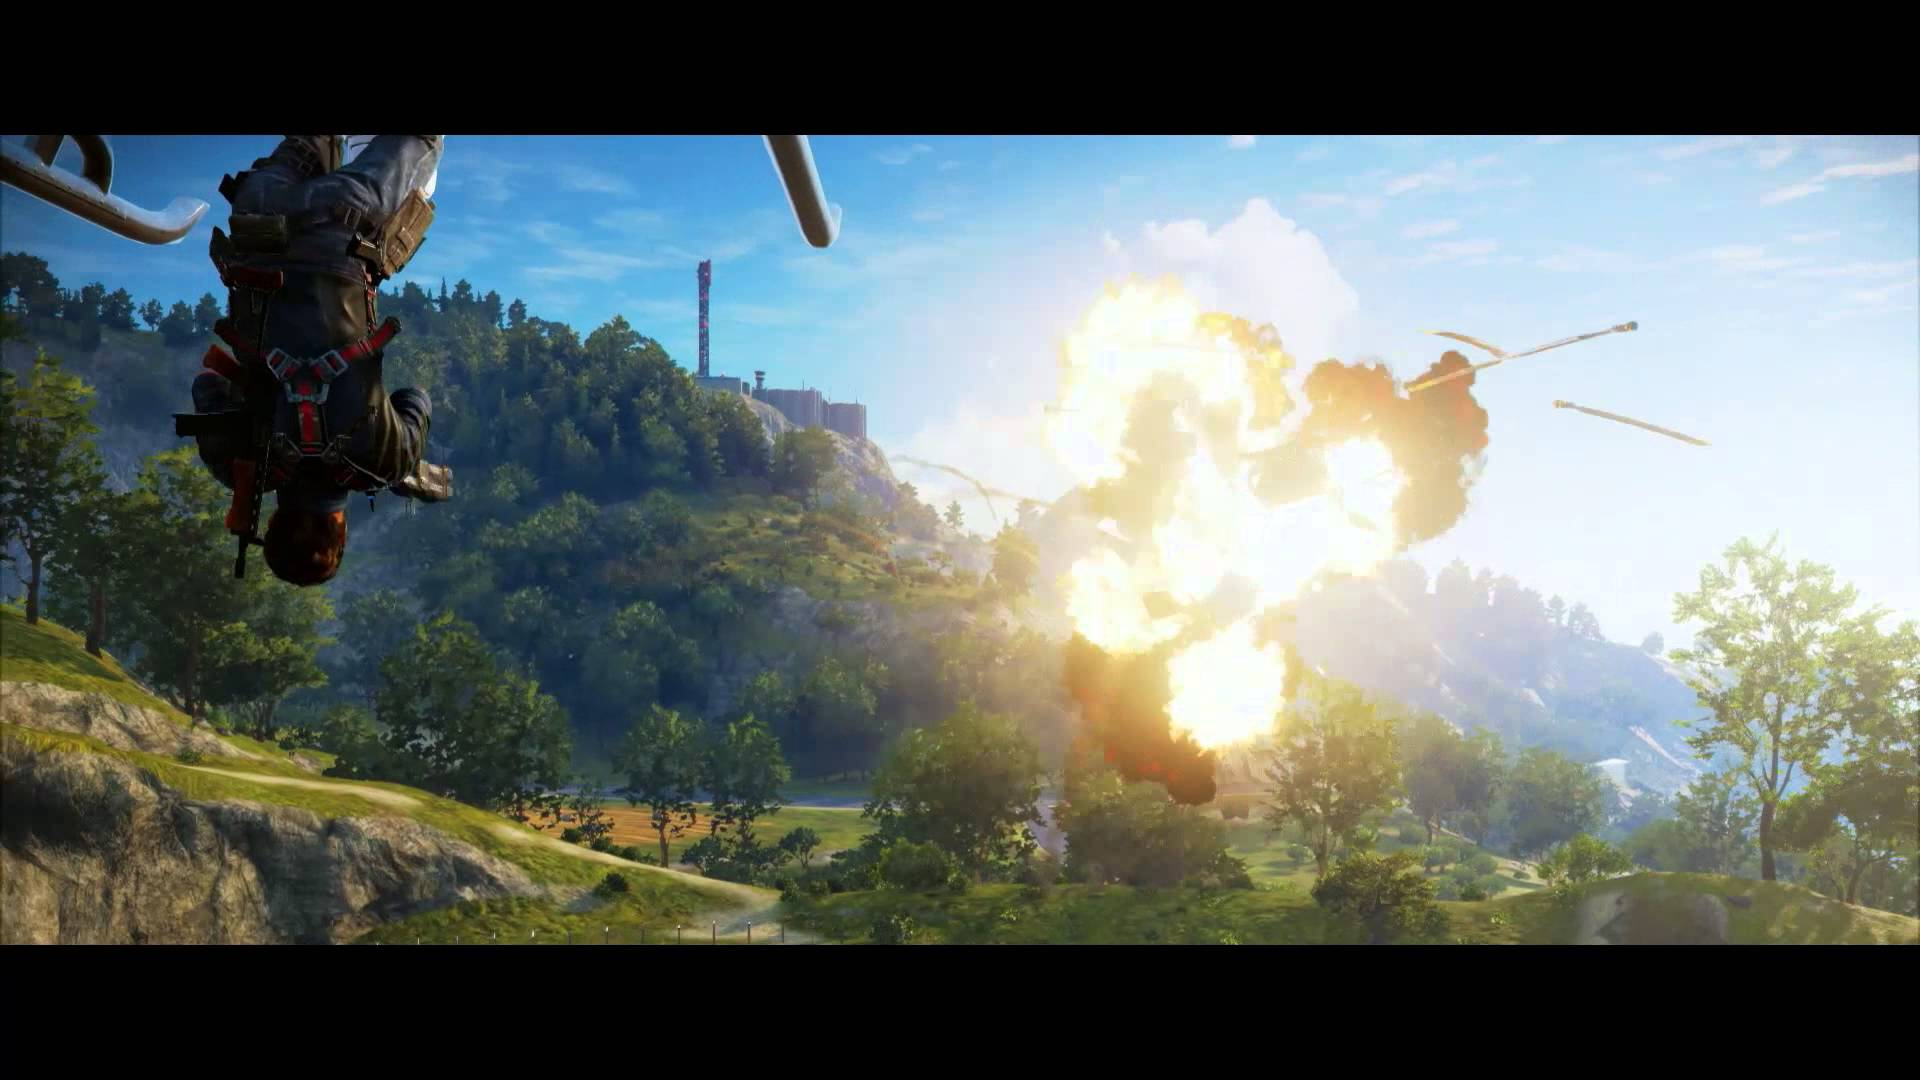 Just Cause 3 gameplay trailer released